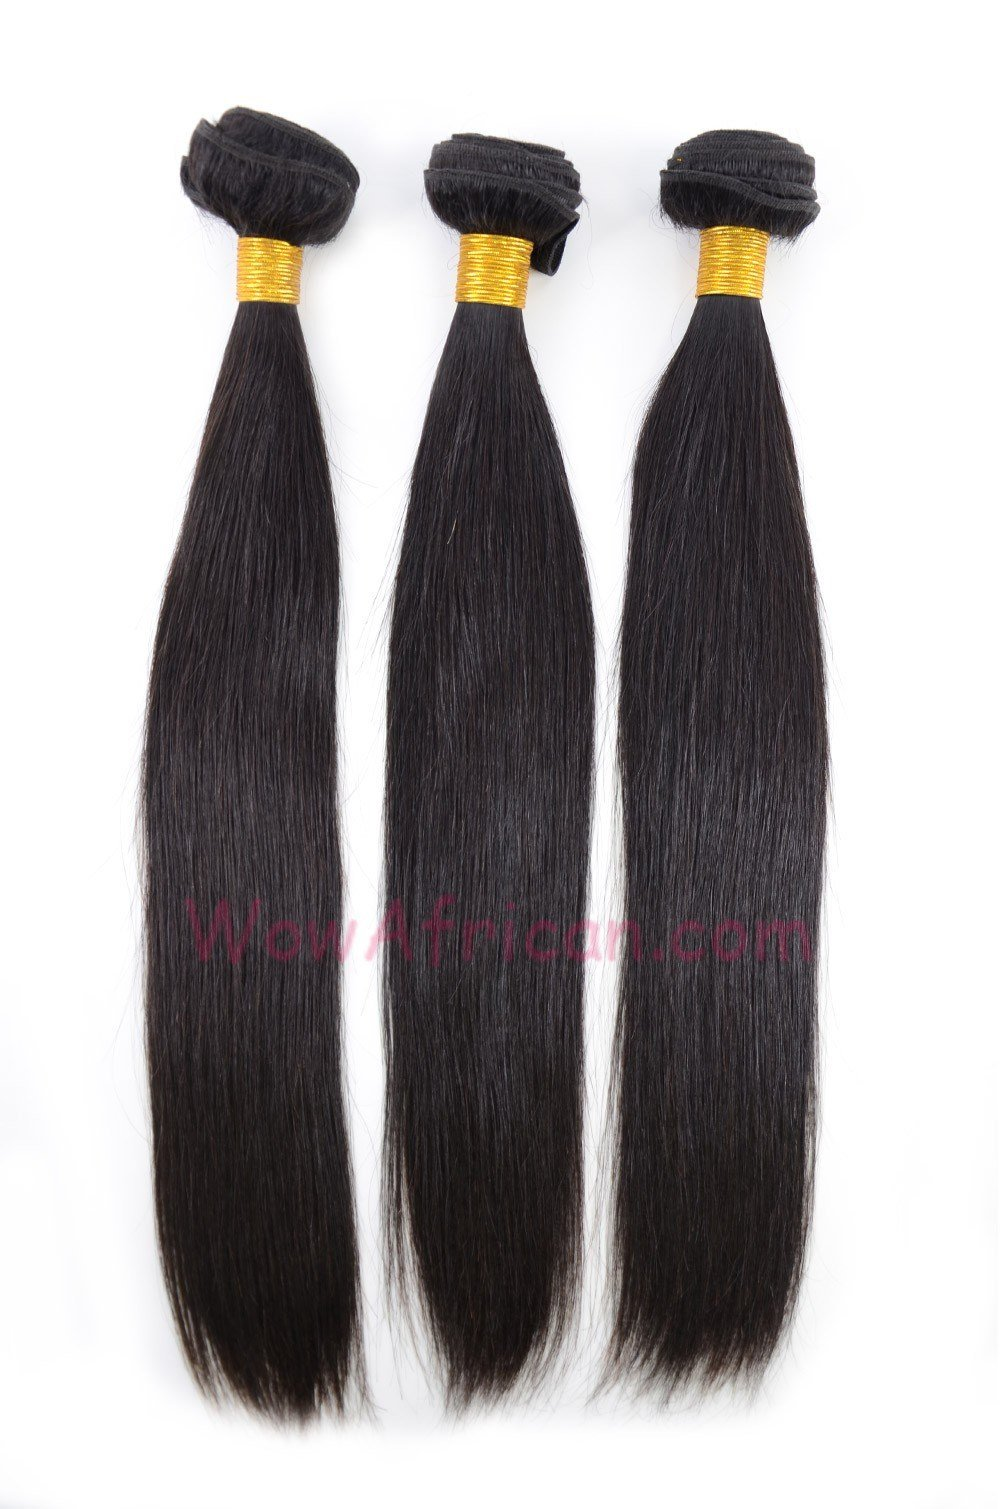 New Natural Color Silky Straight Brazilian V*Rg*N Hair Weave Ideas With Pictures